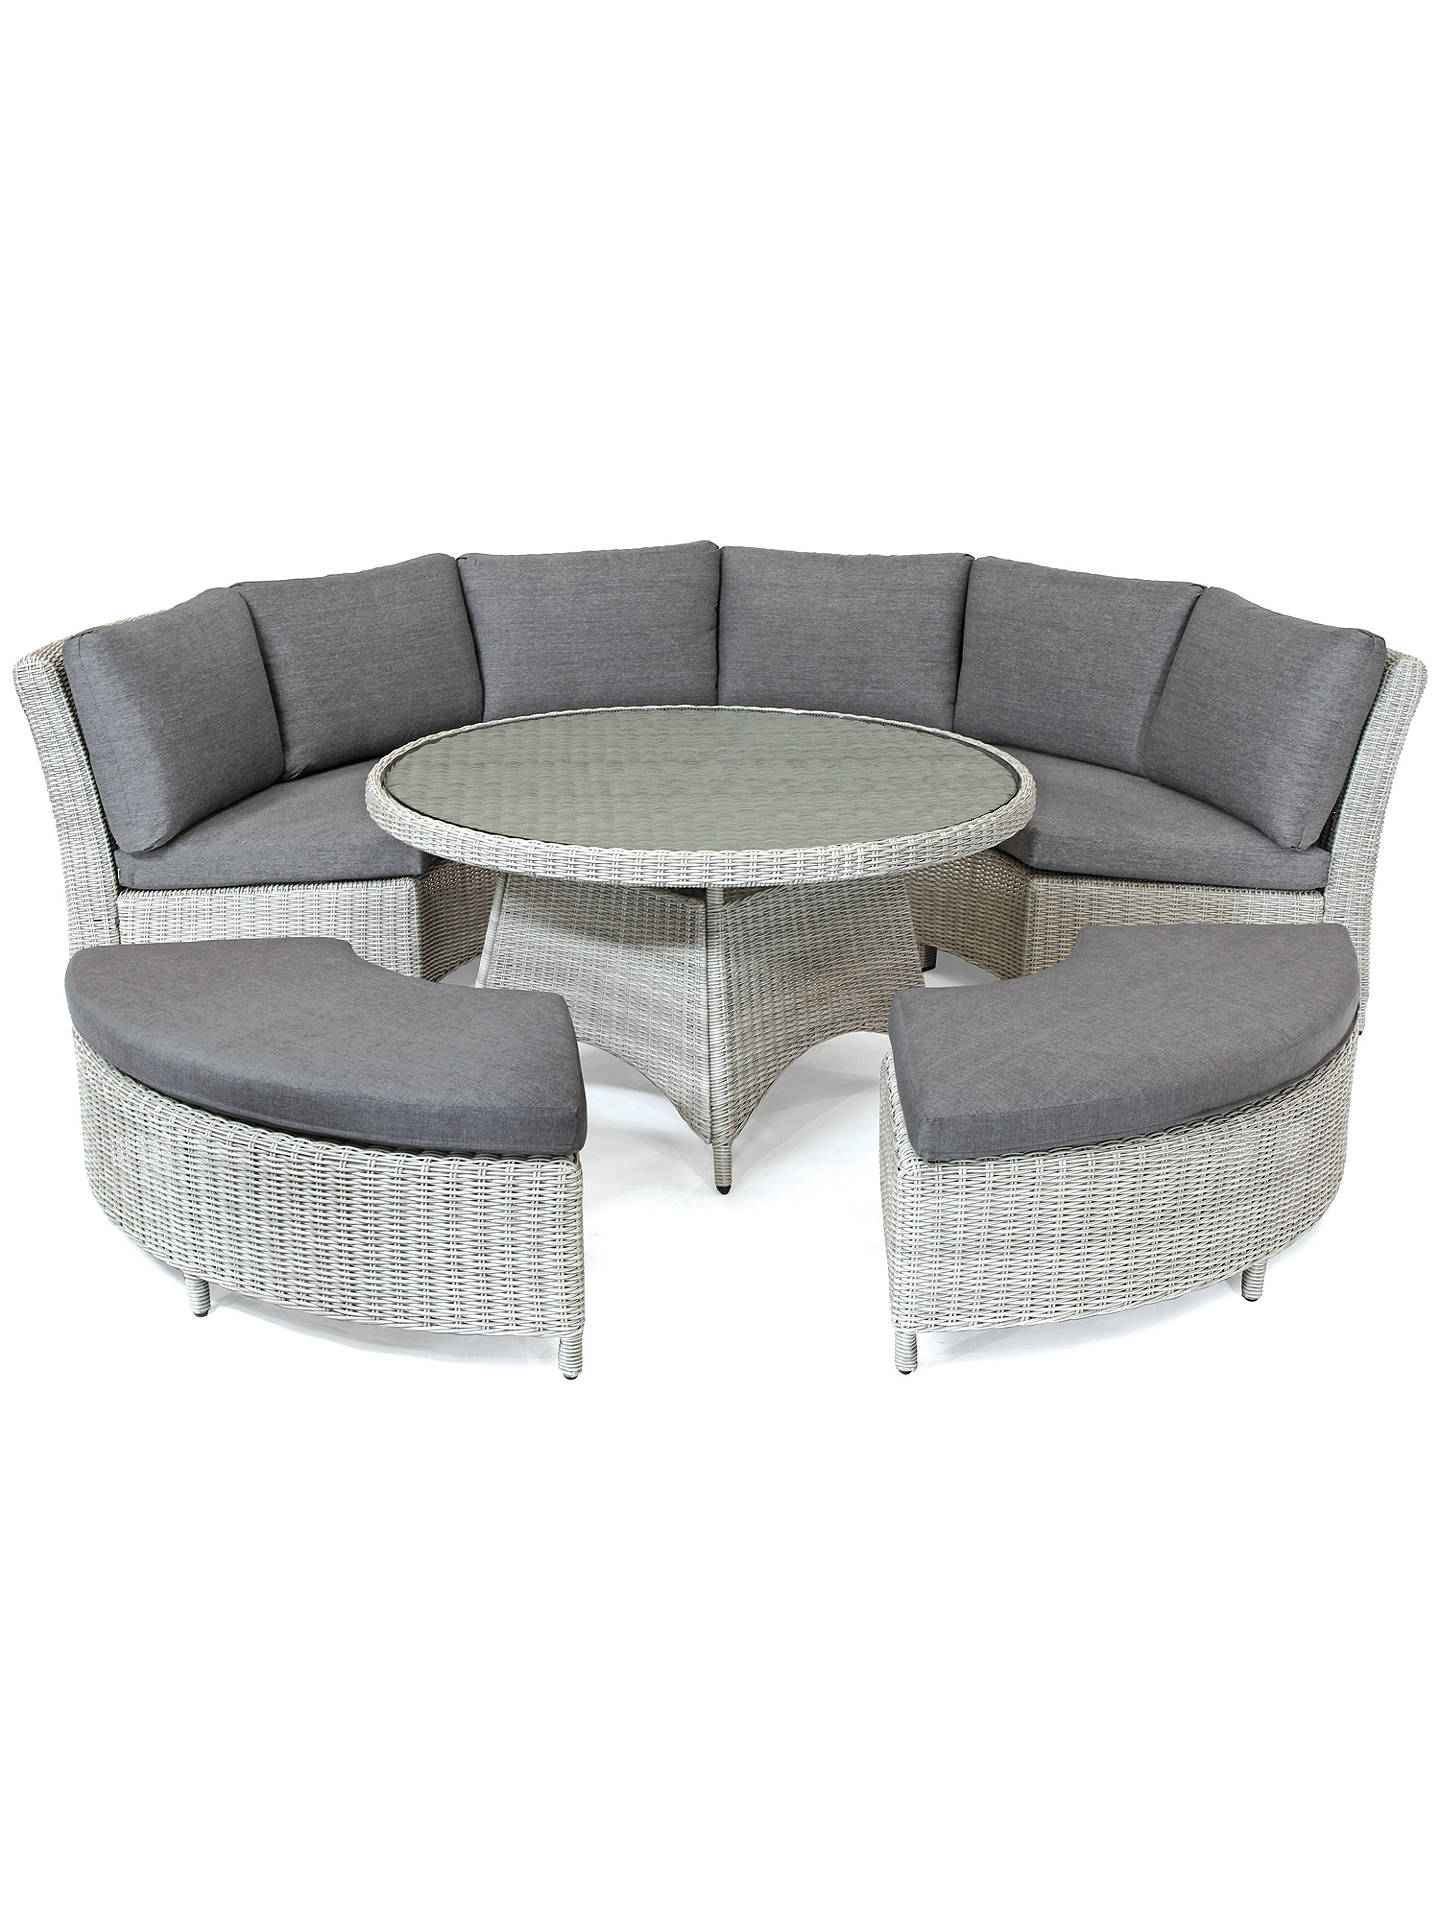 kettler palma 8 seater round garden dining table and. Black Bedroom Furniture Sets. Home Design Ideas